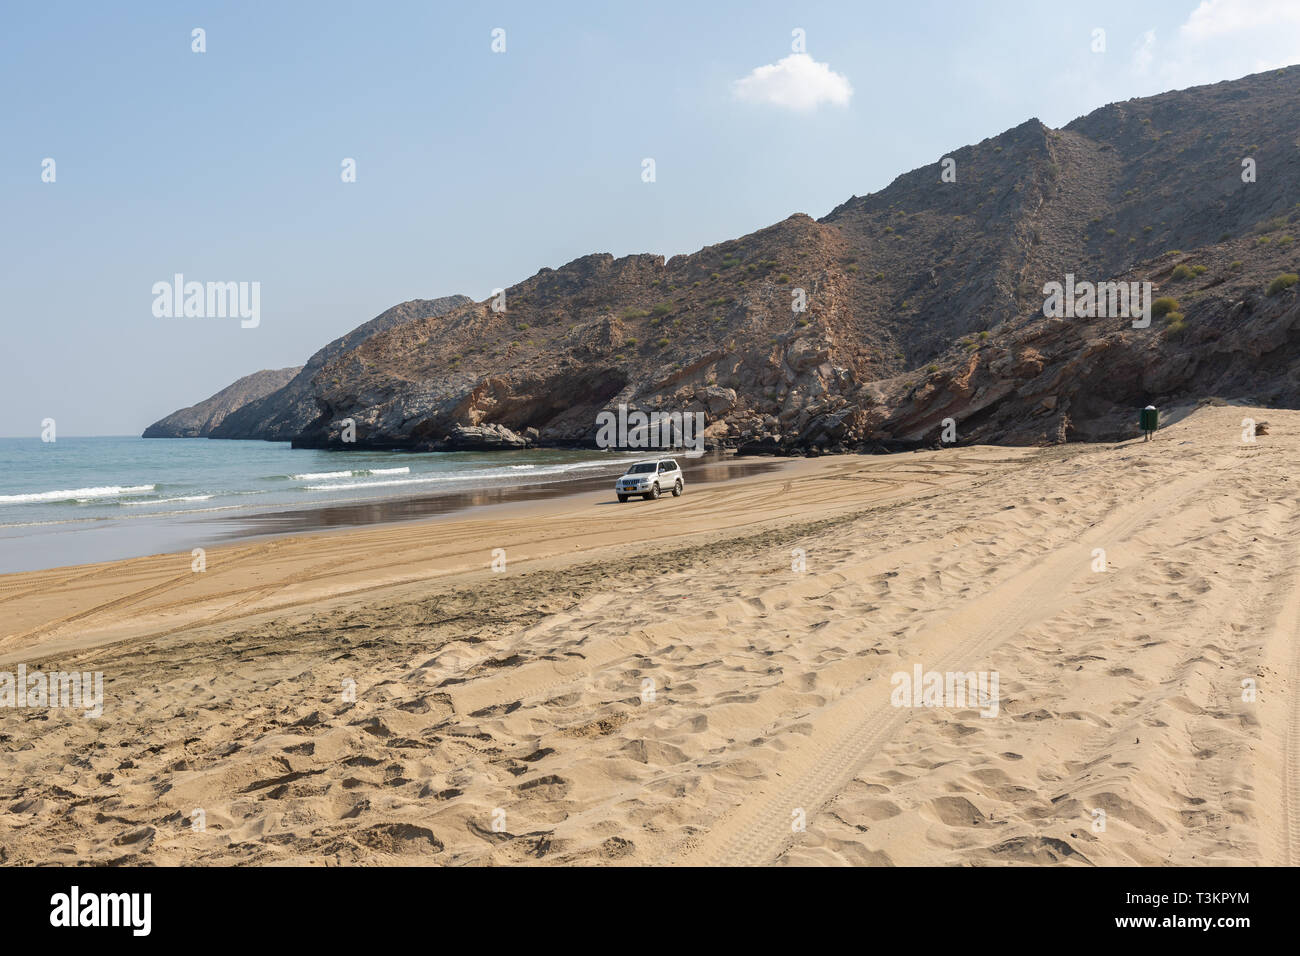 Empty Yiti Beach in a summer morning tire tracks on the sand near Muscat - Sultanate of Oman - Stock Image